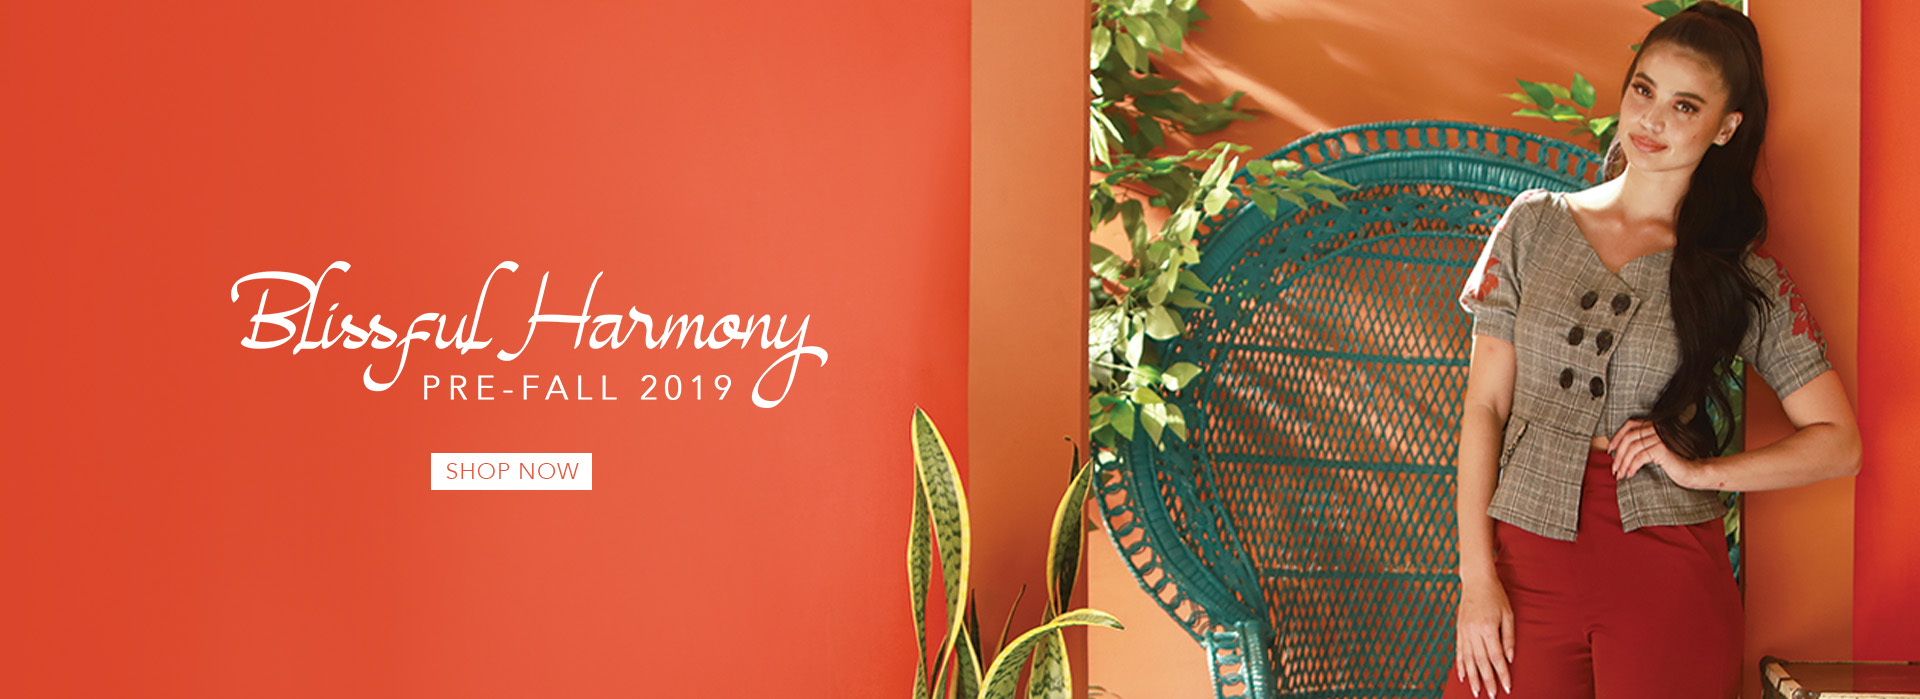 PC-Blissful-Harmony-Banner